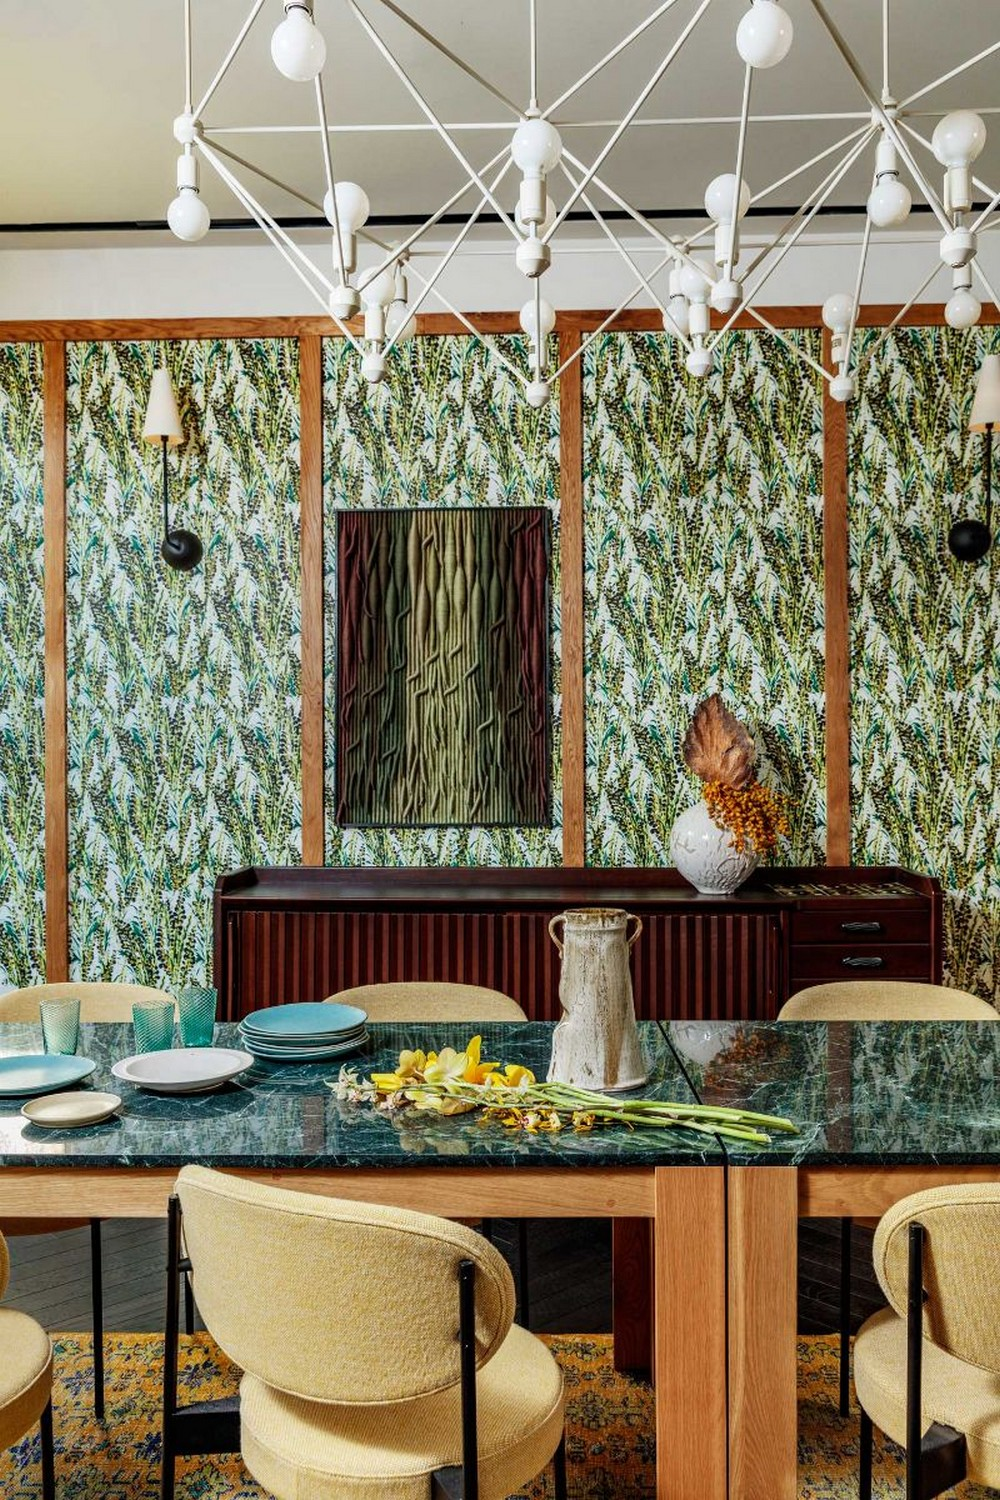 Kelly Wearstler's Most Ambitious Dining Room Projects kelly wearstler Kelly Wearstler's Most Ambitious Dining Room Projects KellyWearstlers New Proper Hotel Residence With Layered Interiors 4